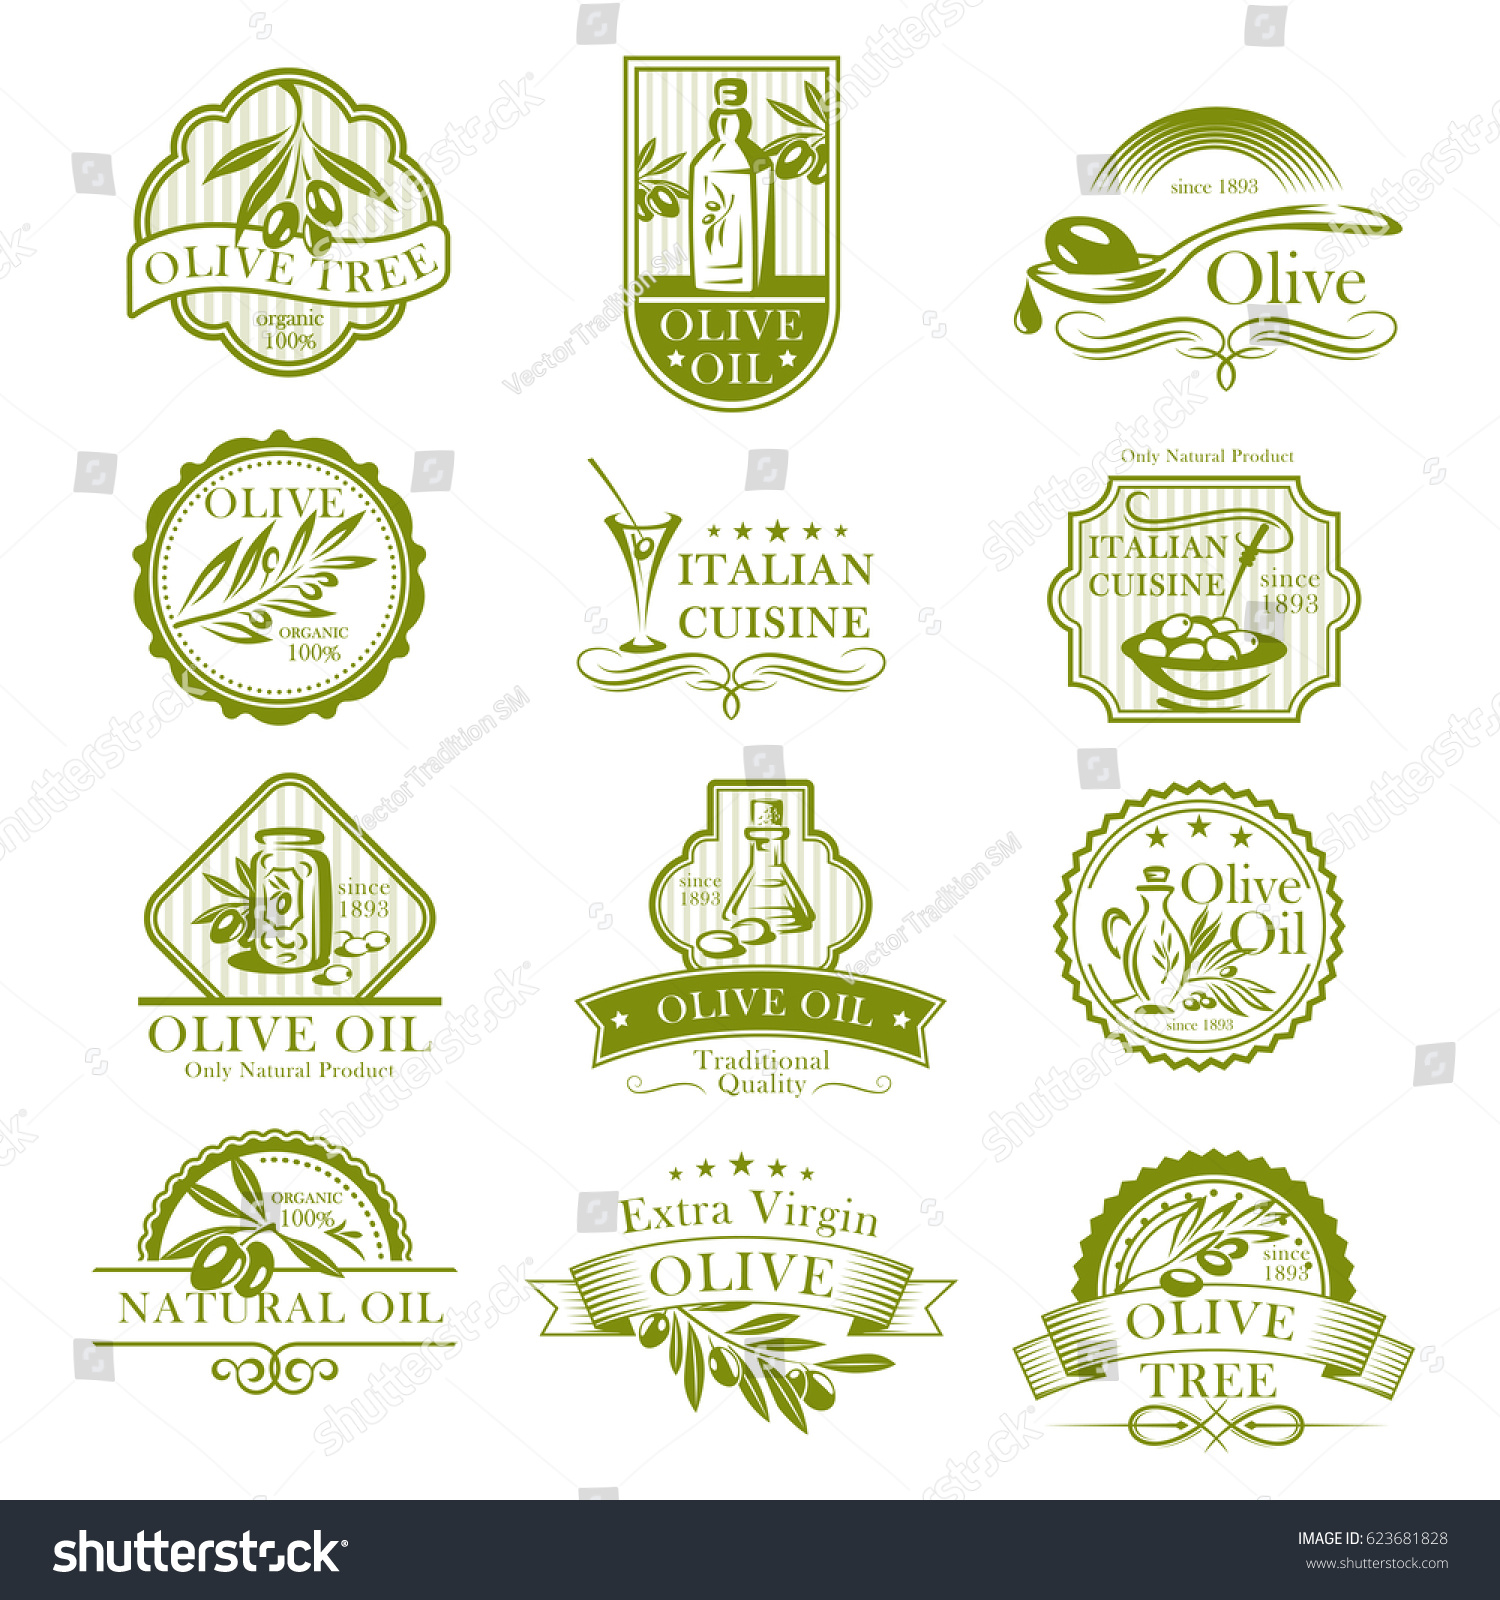 Olive oil vector icons set fresh stock vector 623681828 shutterstock olive oil vector icons set and fresh olives labels for italian cuisine or olive products packaging buycottarizona